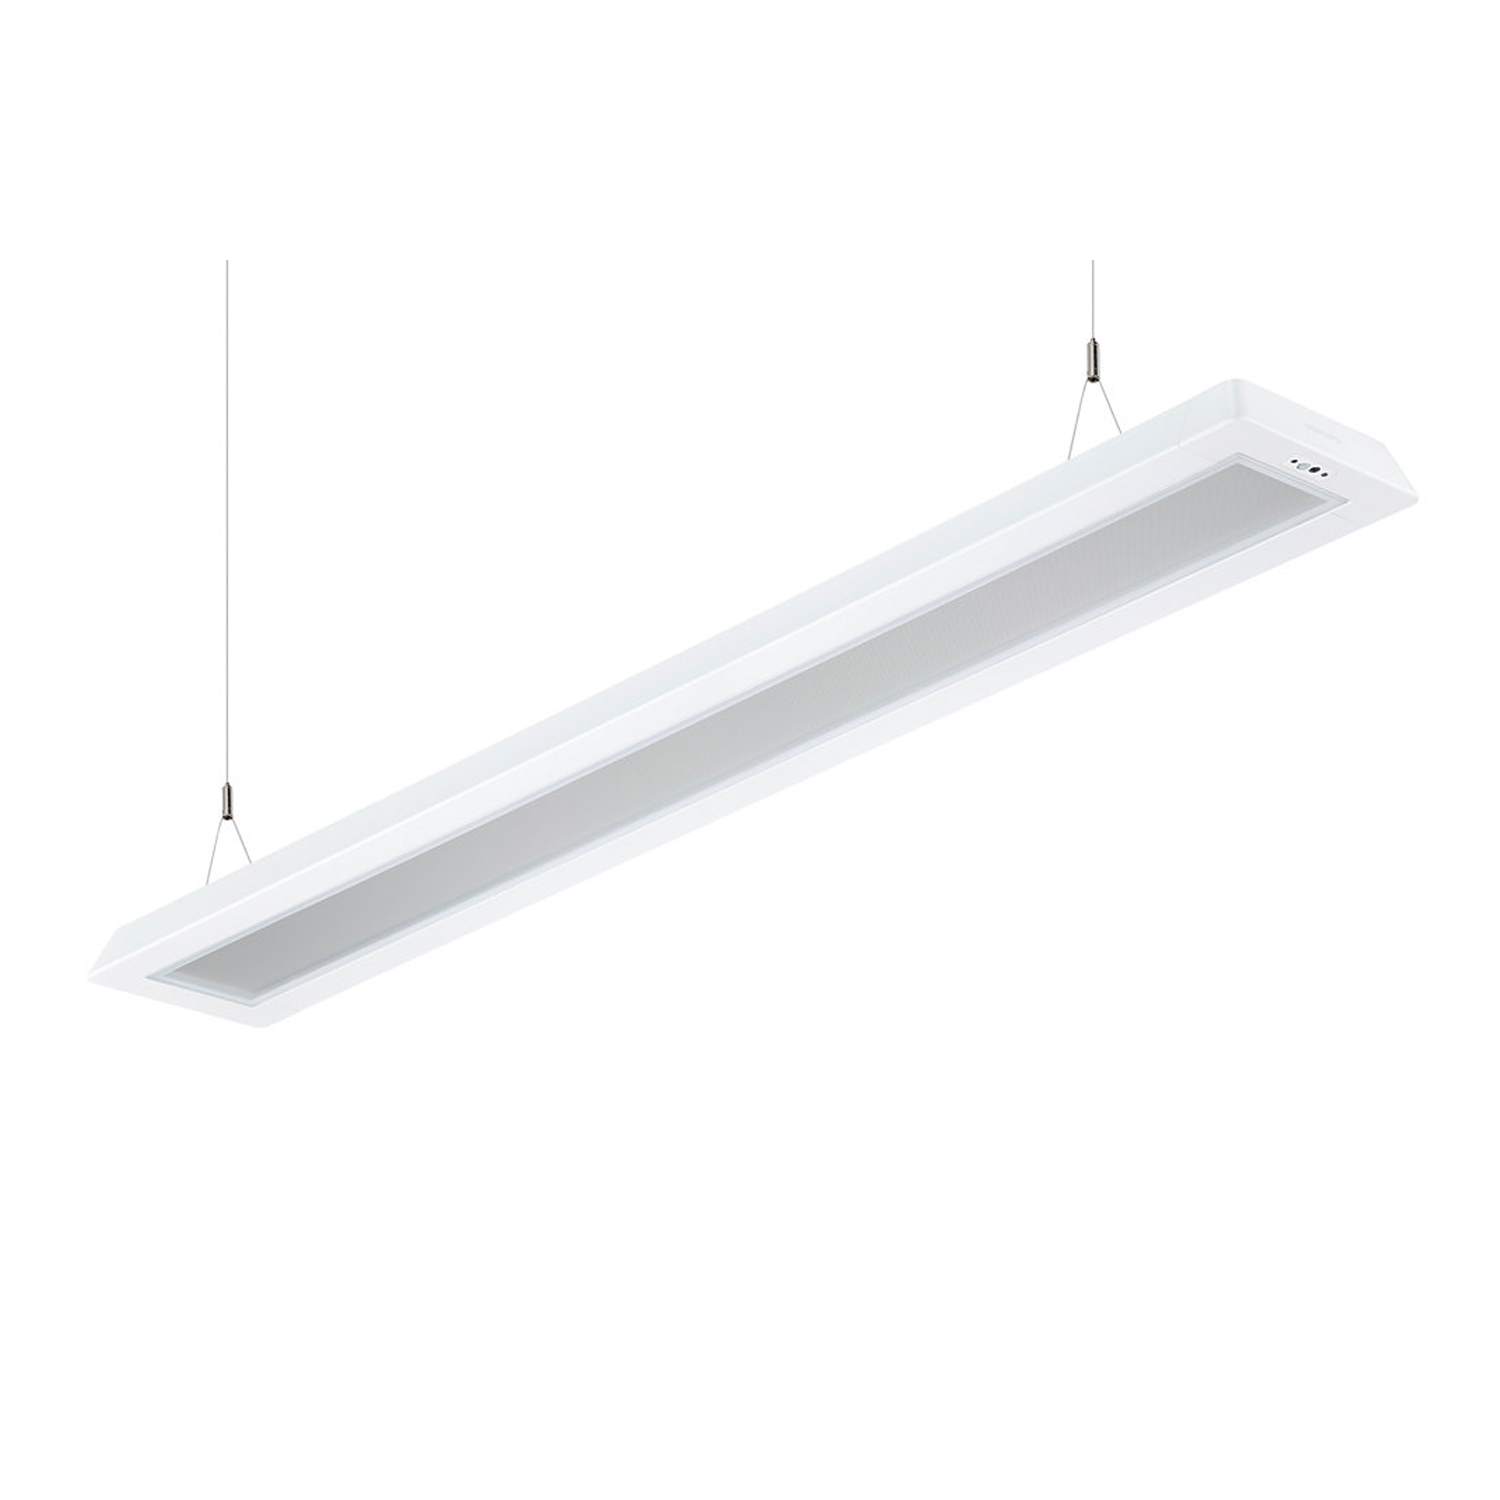 Philips FlexBlend LED Panel SP340P 32.5W 940 3600lm - Cool White